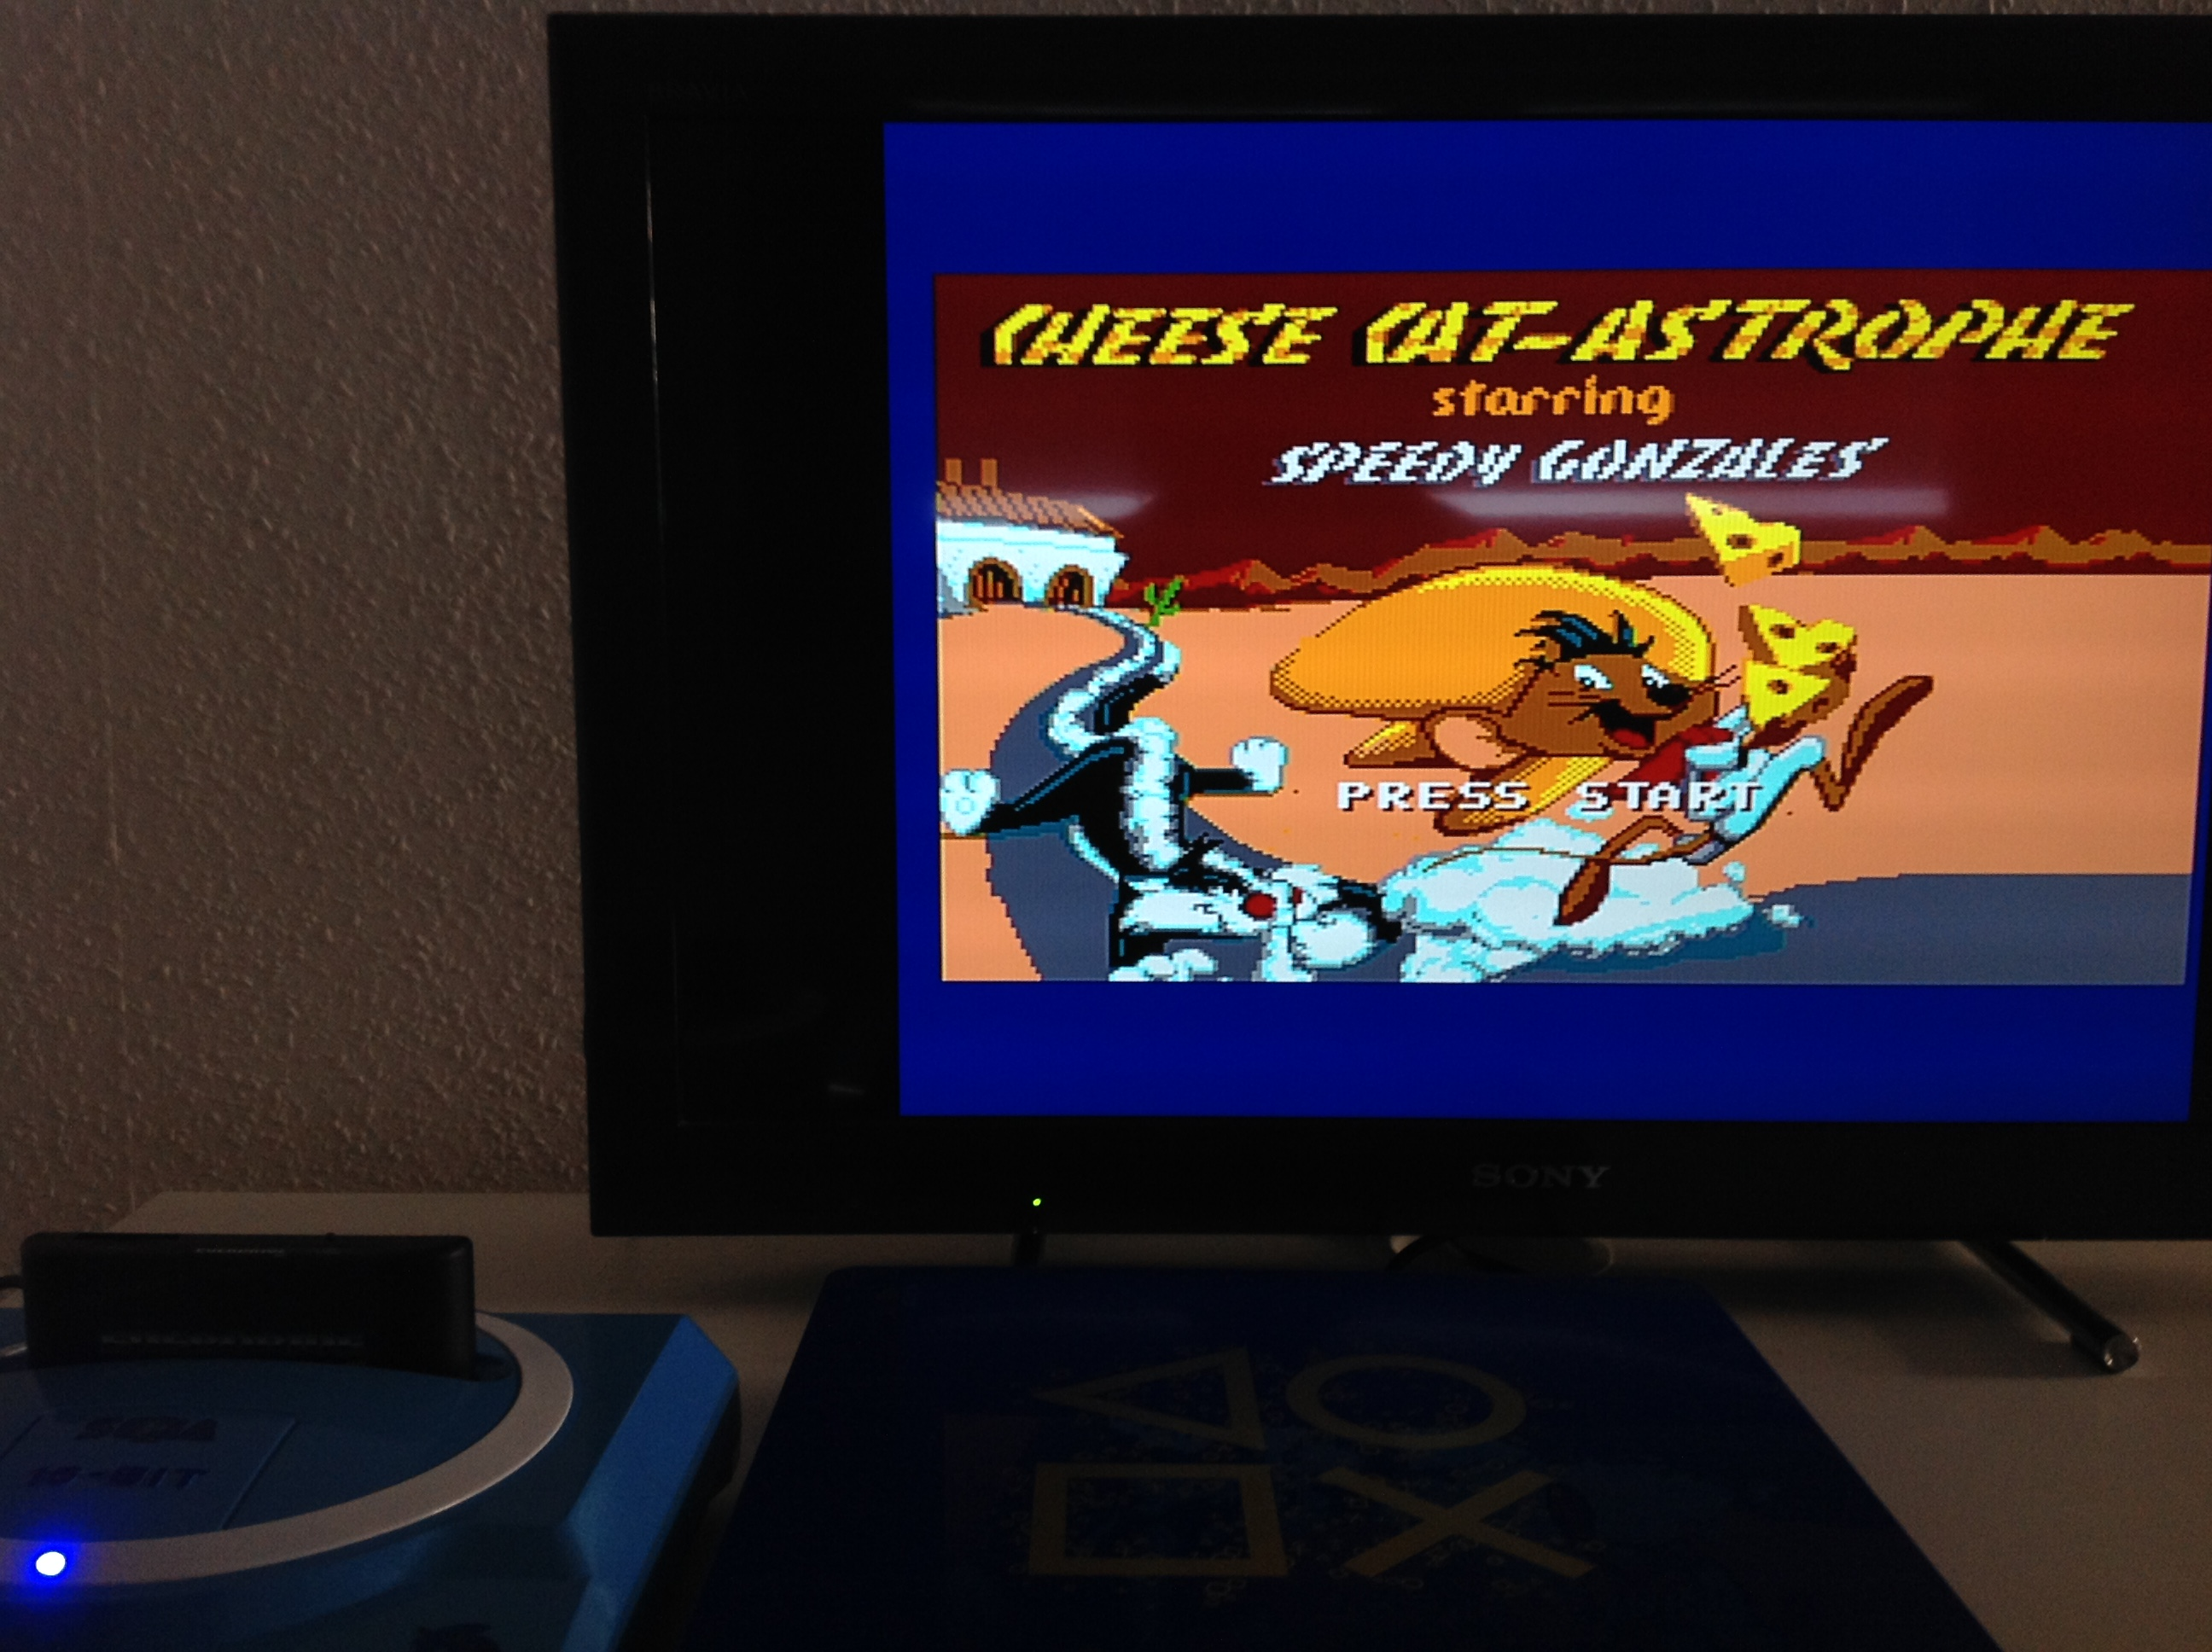 CoCoForest: Cheese Cat-Astrophe Starring Speedy Gonzales (Sega Master System) 980 points on 2018-07-24 02:08:59